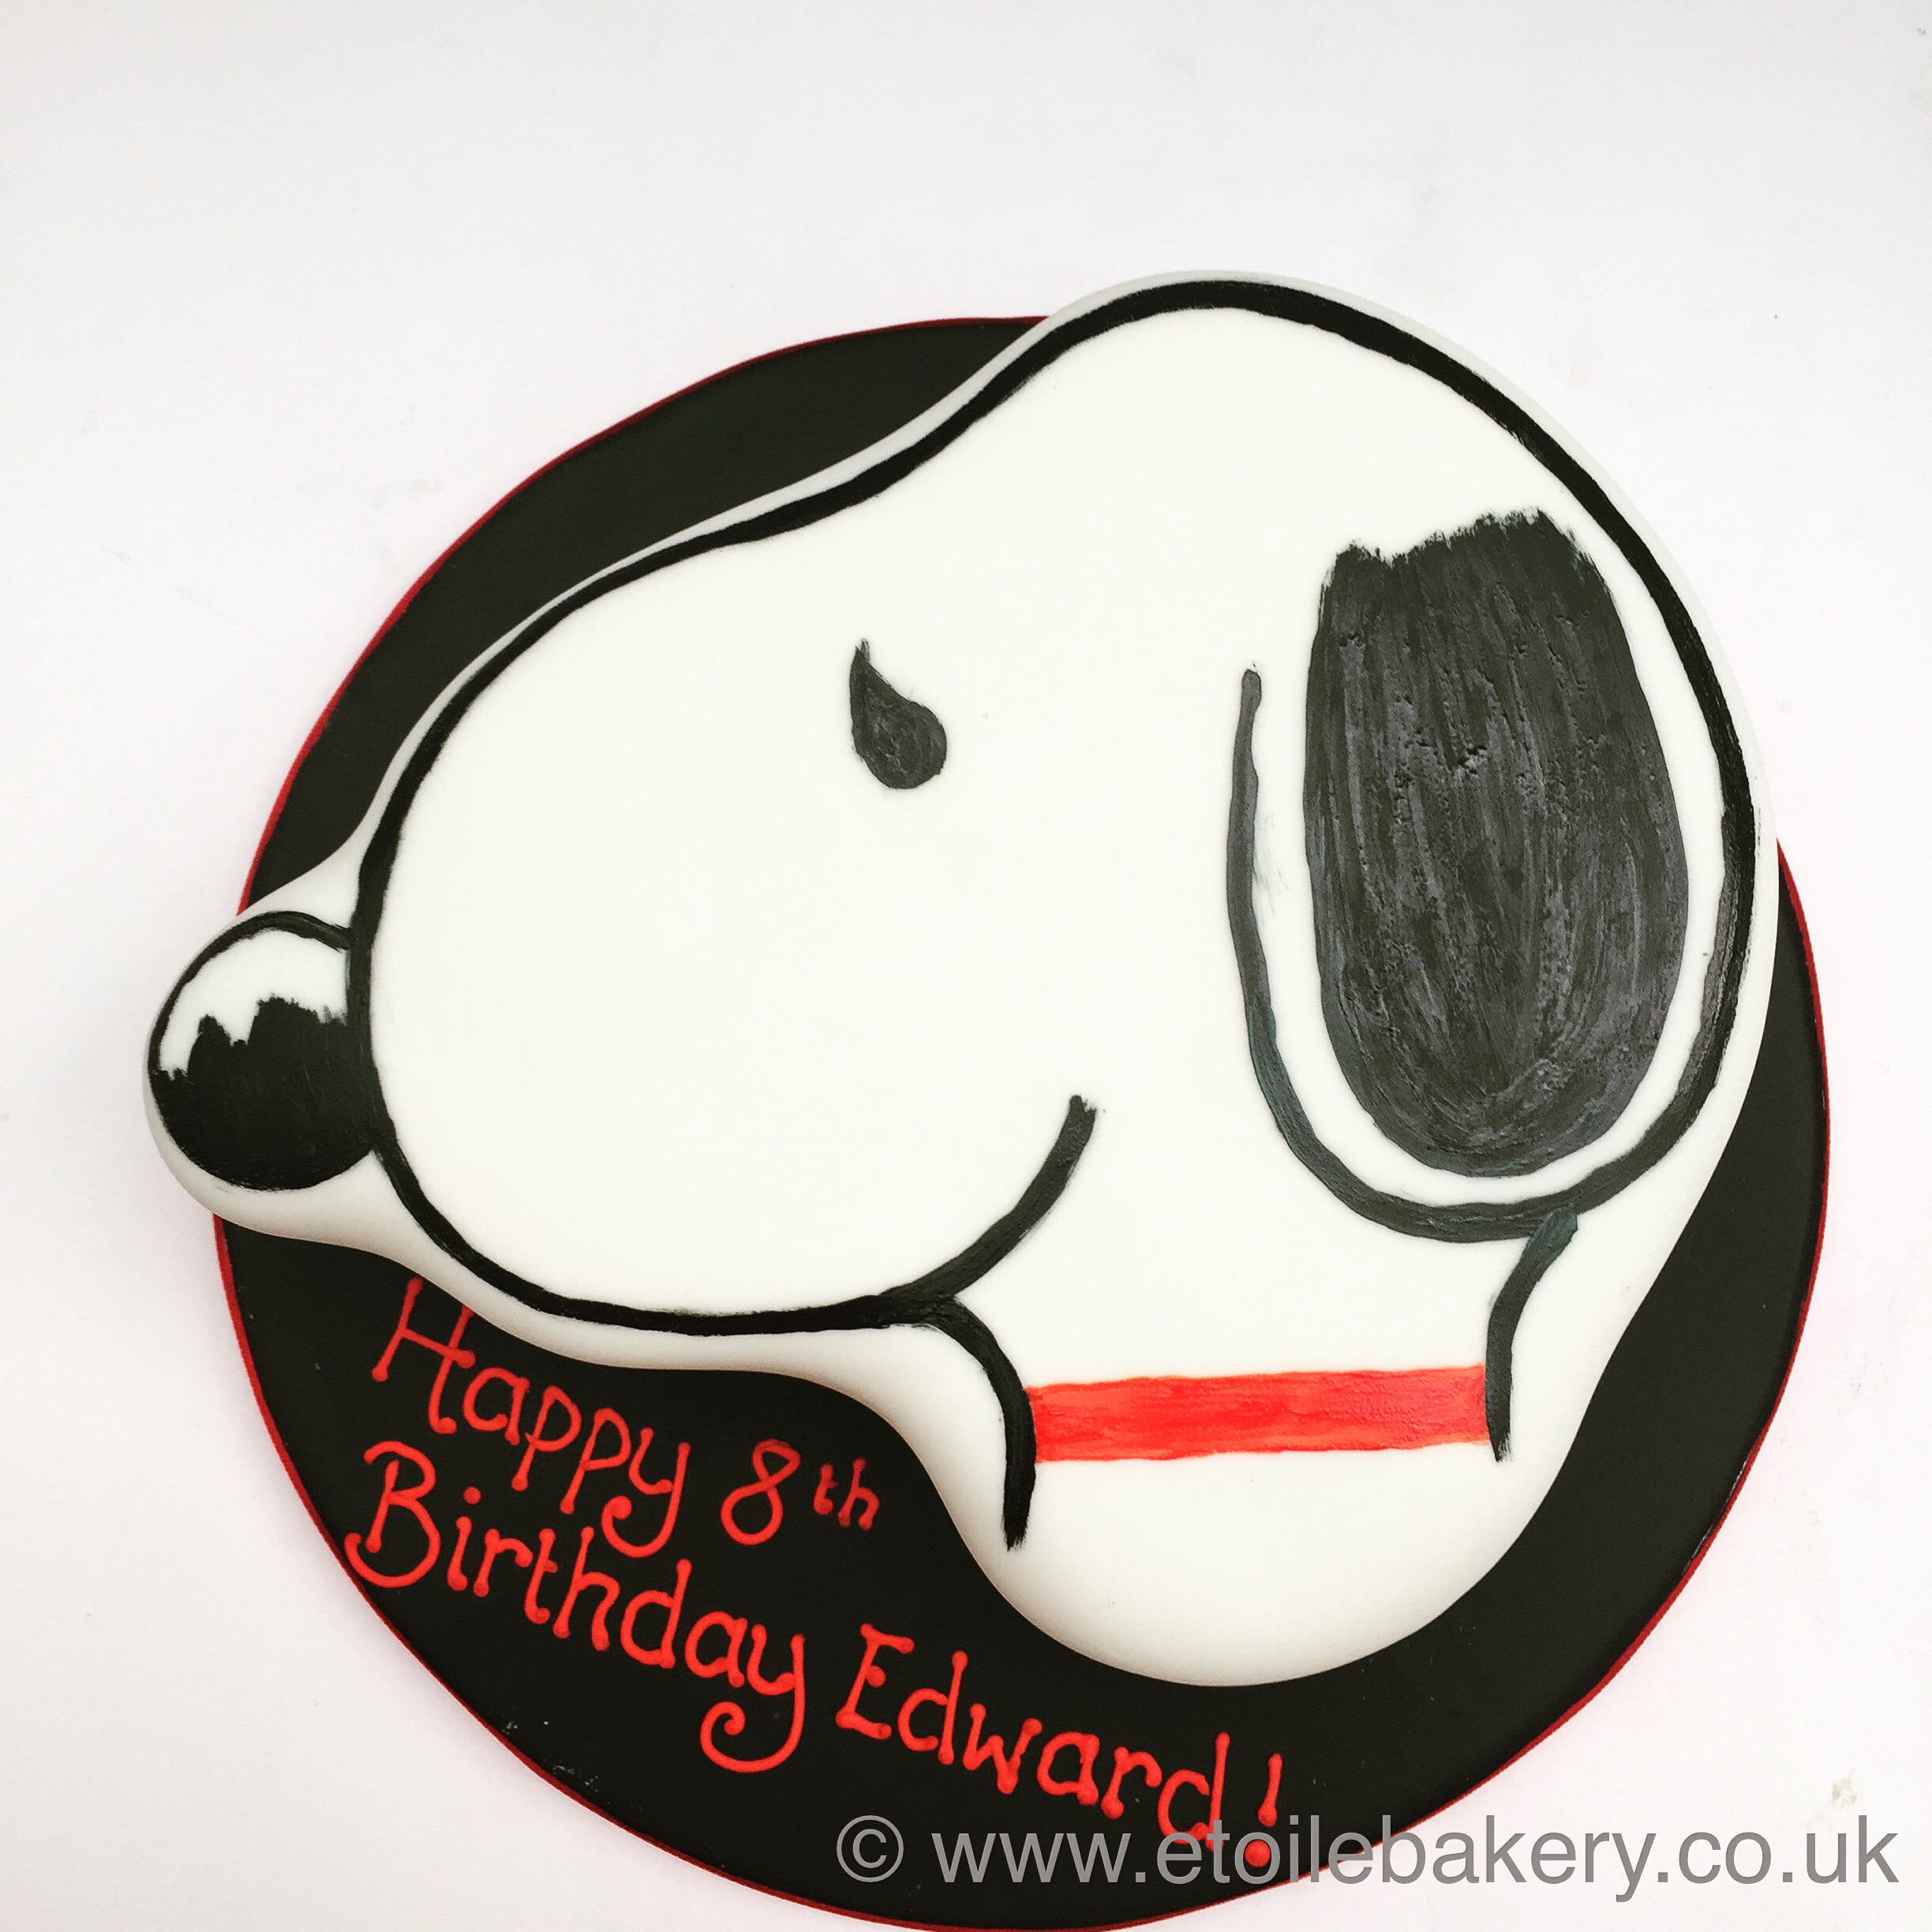 snoopy birthday cake london Etoile Bakery